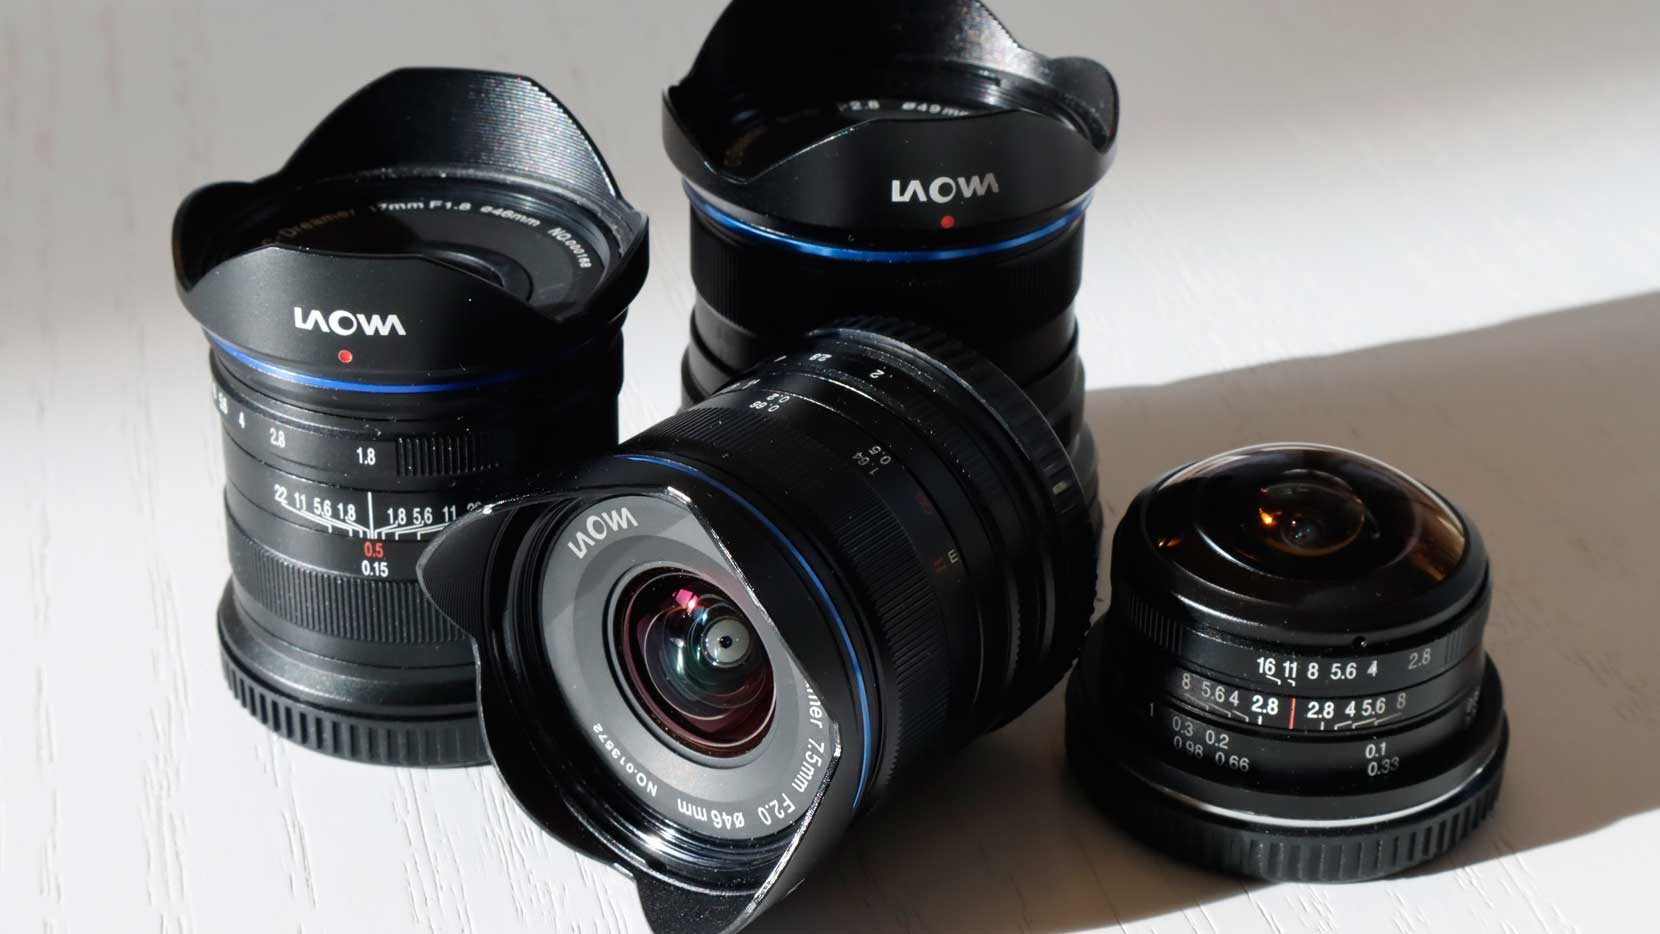 First Look: Laowa Lenses for Micro Four-thirds